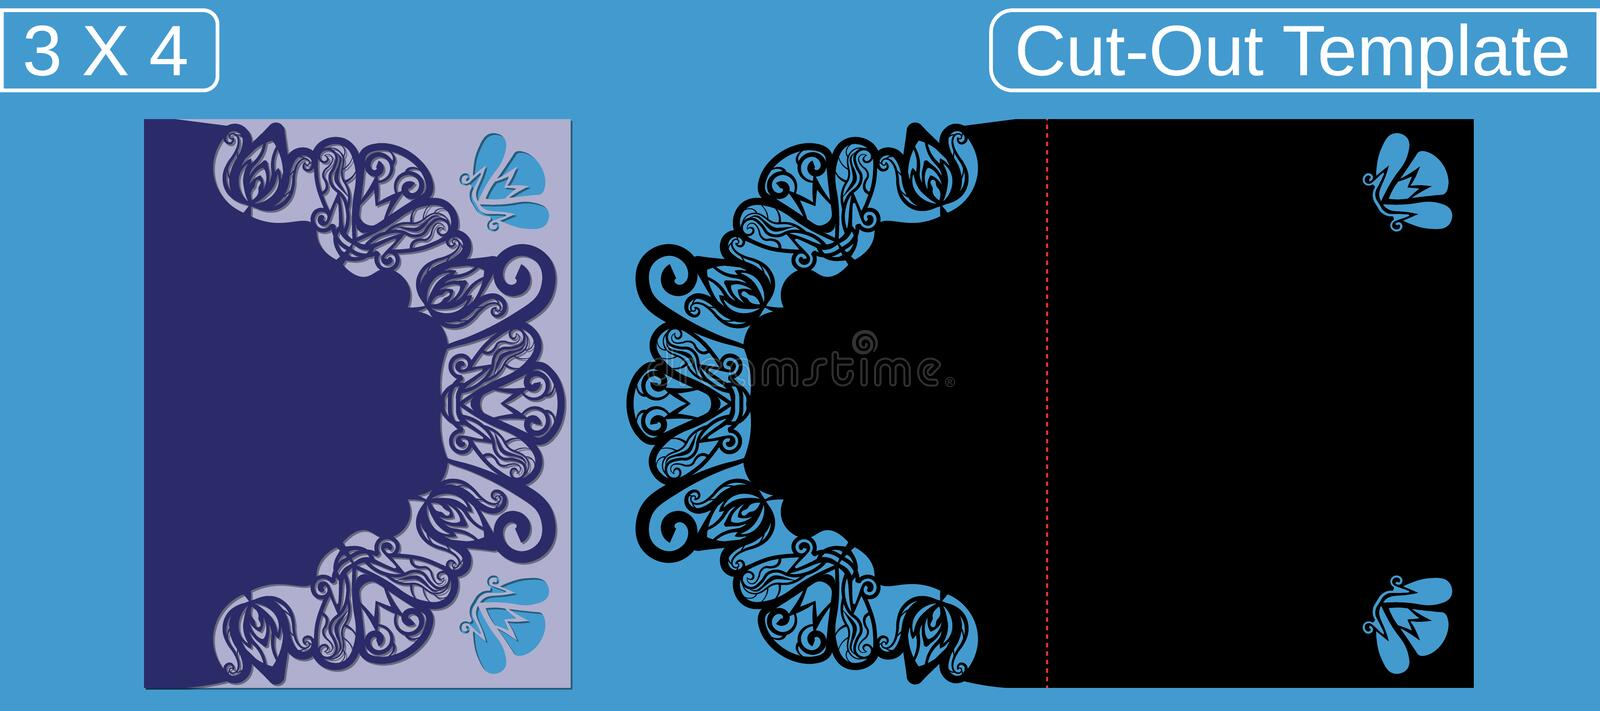 Laser cut wedding invitation card template.  Cut out the paper card with floral pattern.  Greeting card with an aspect ratio of 3 stock image